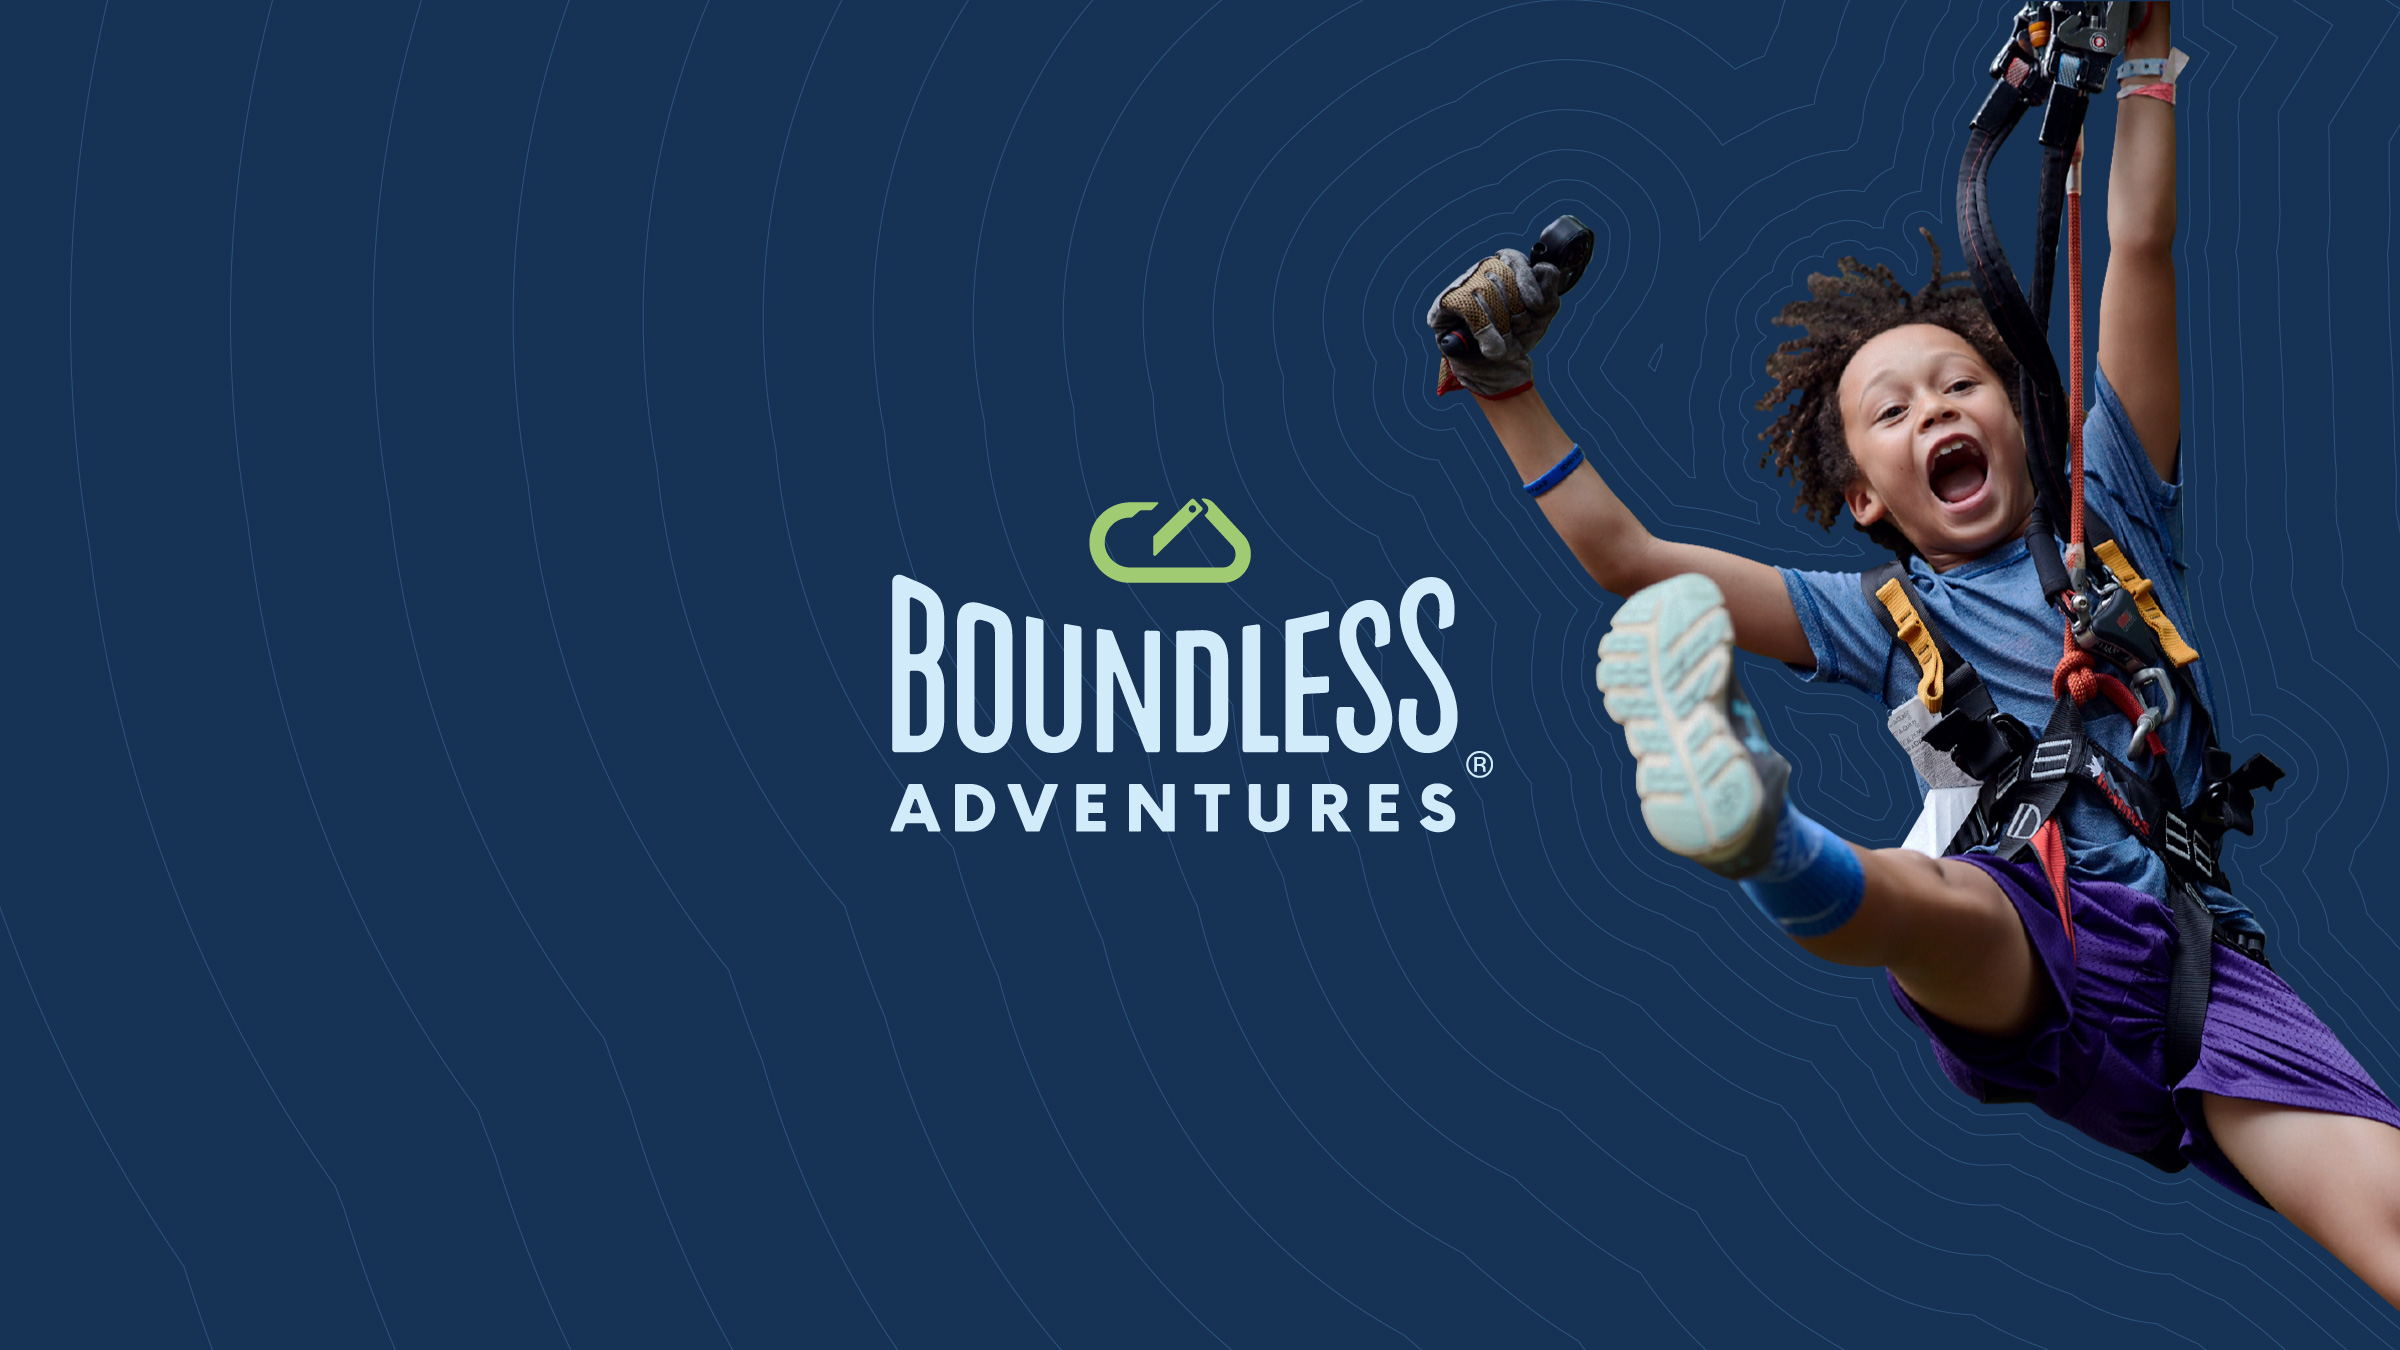 Branding and Design work for Boundless Adventures